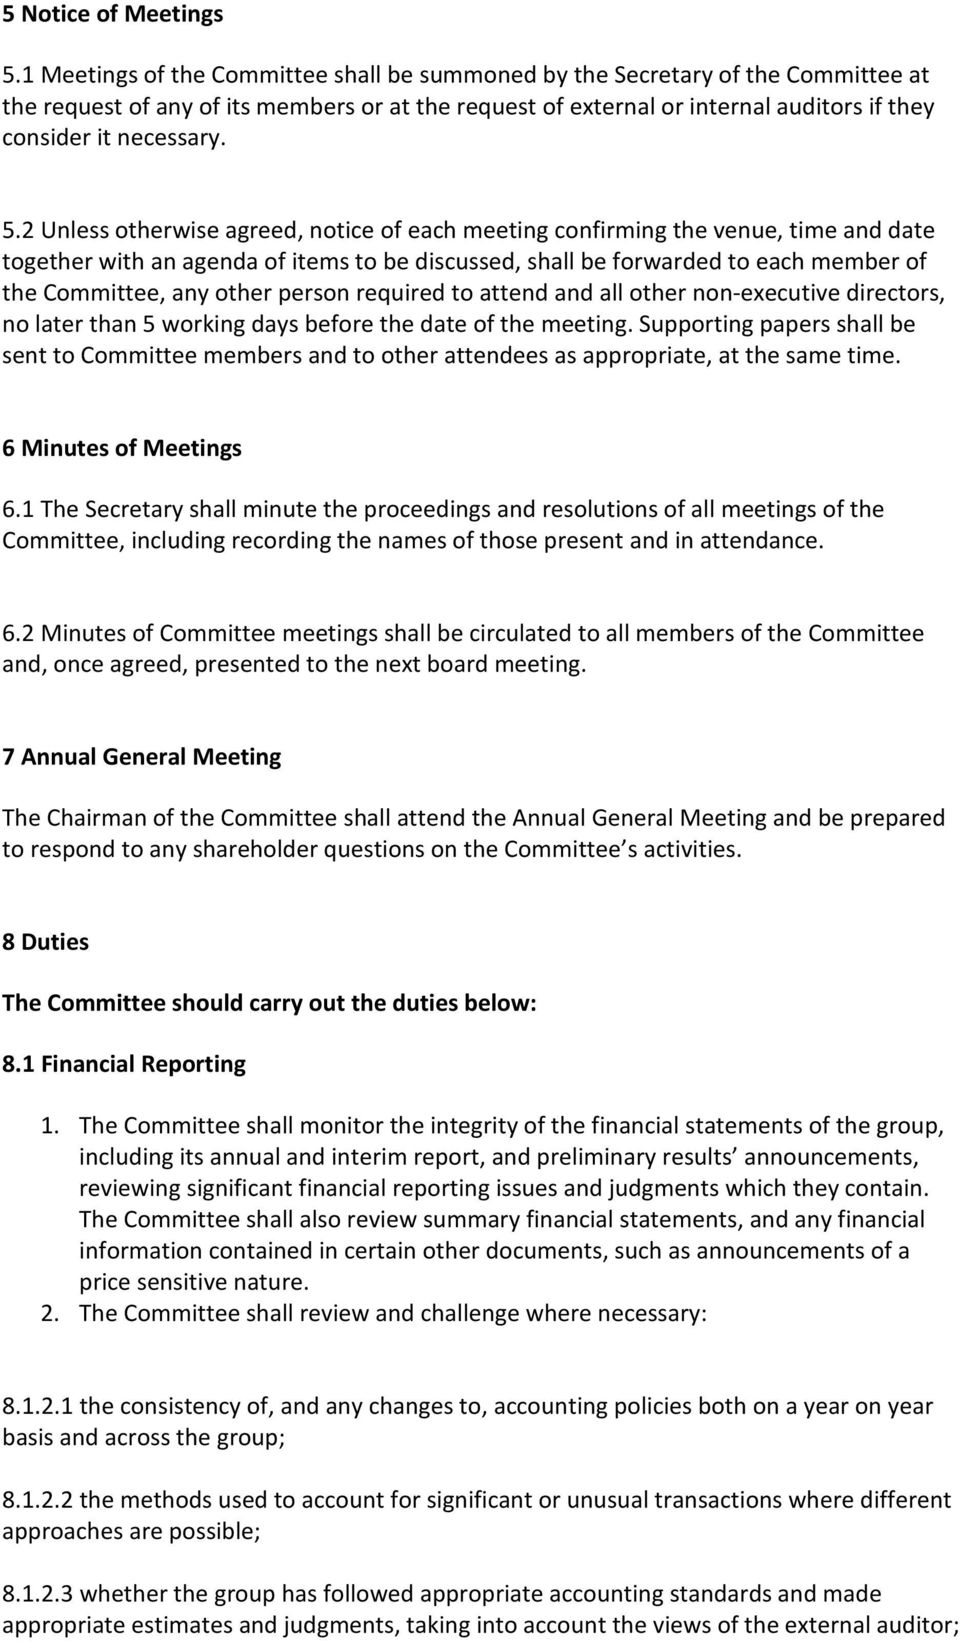 5.2 Unless otherwise agreed, notice of each meeting confirming the venue, time and date together with an agenda of items to be discussed, shall be forwarded to each member of the Committee, any other